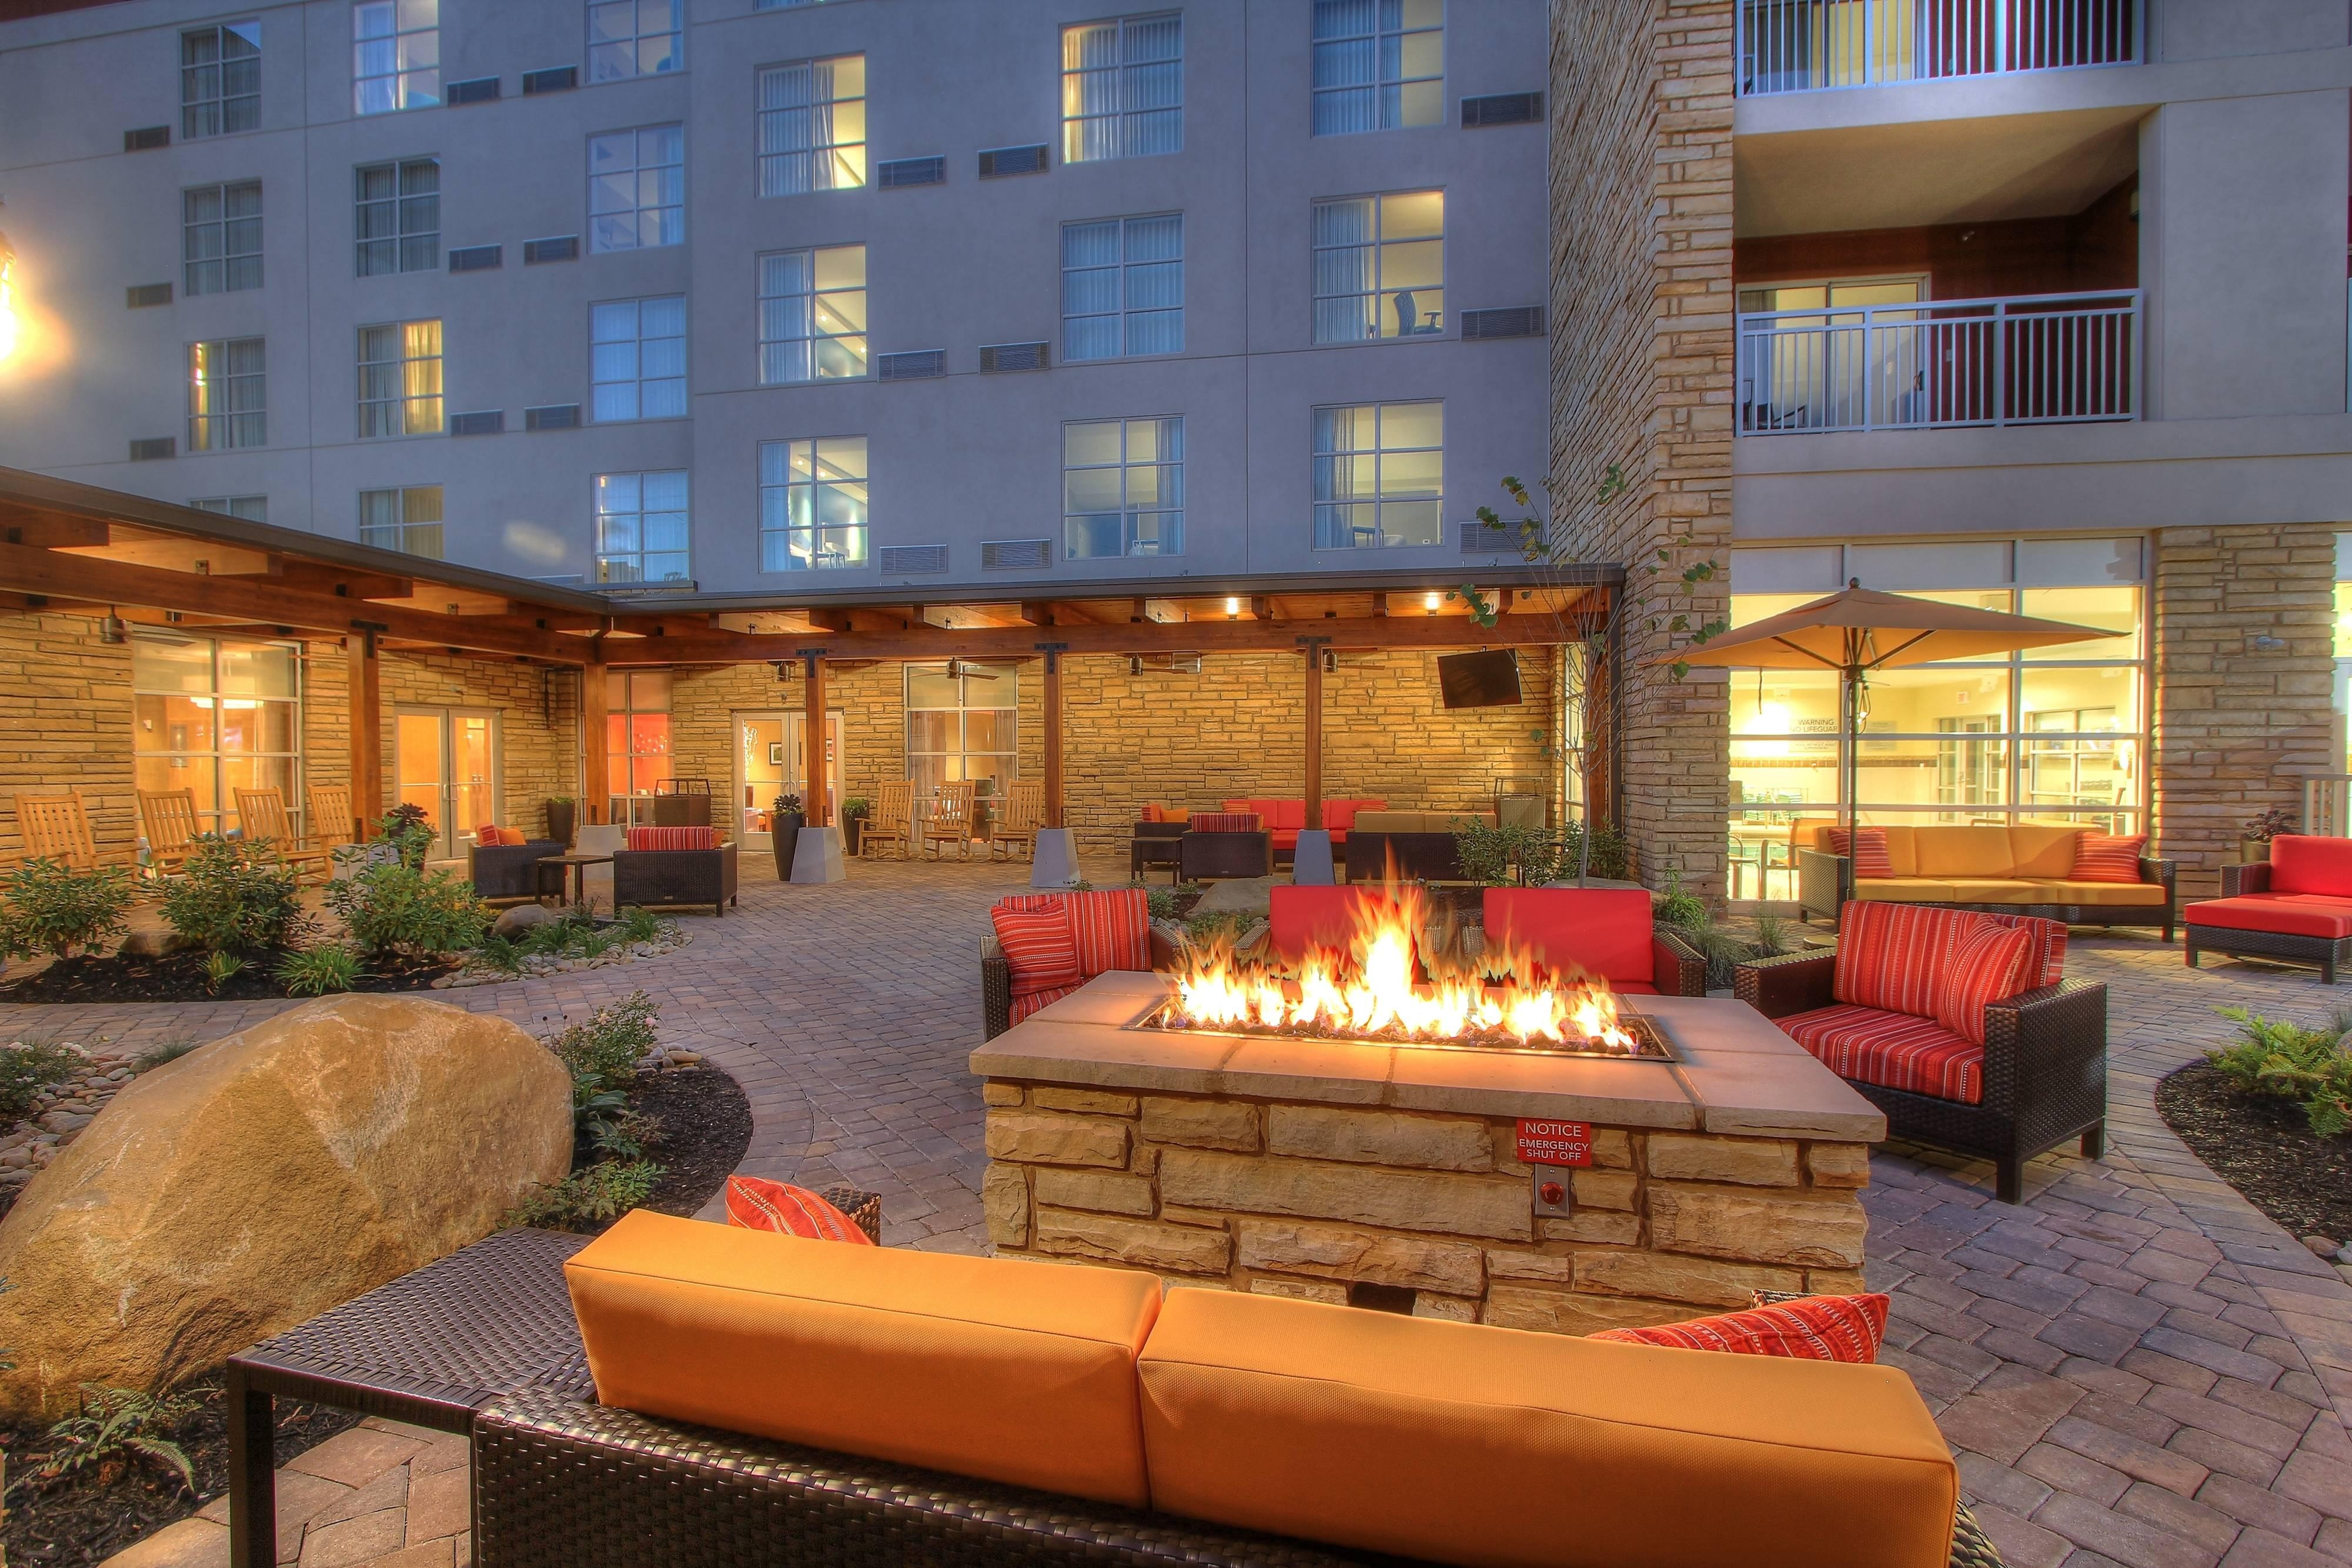 Courtyard Patio and Fire Pit